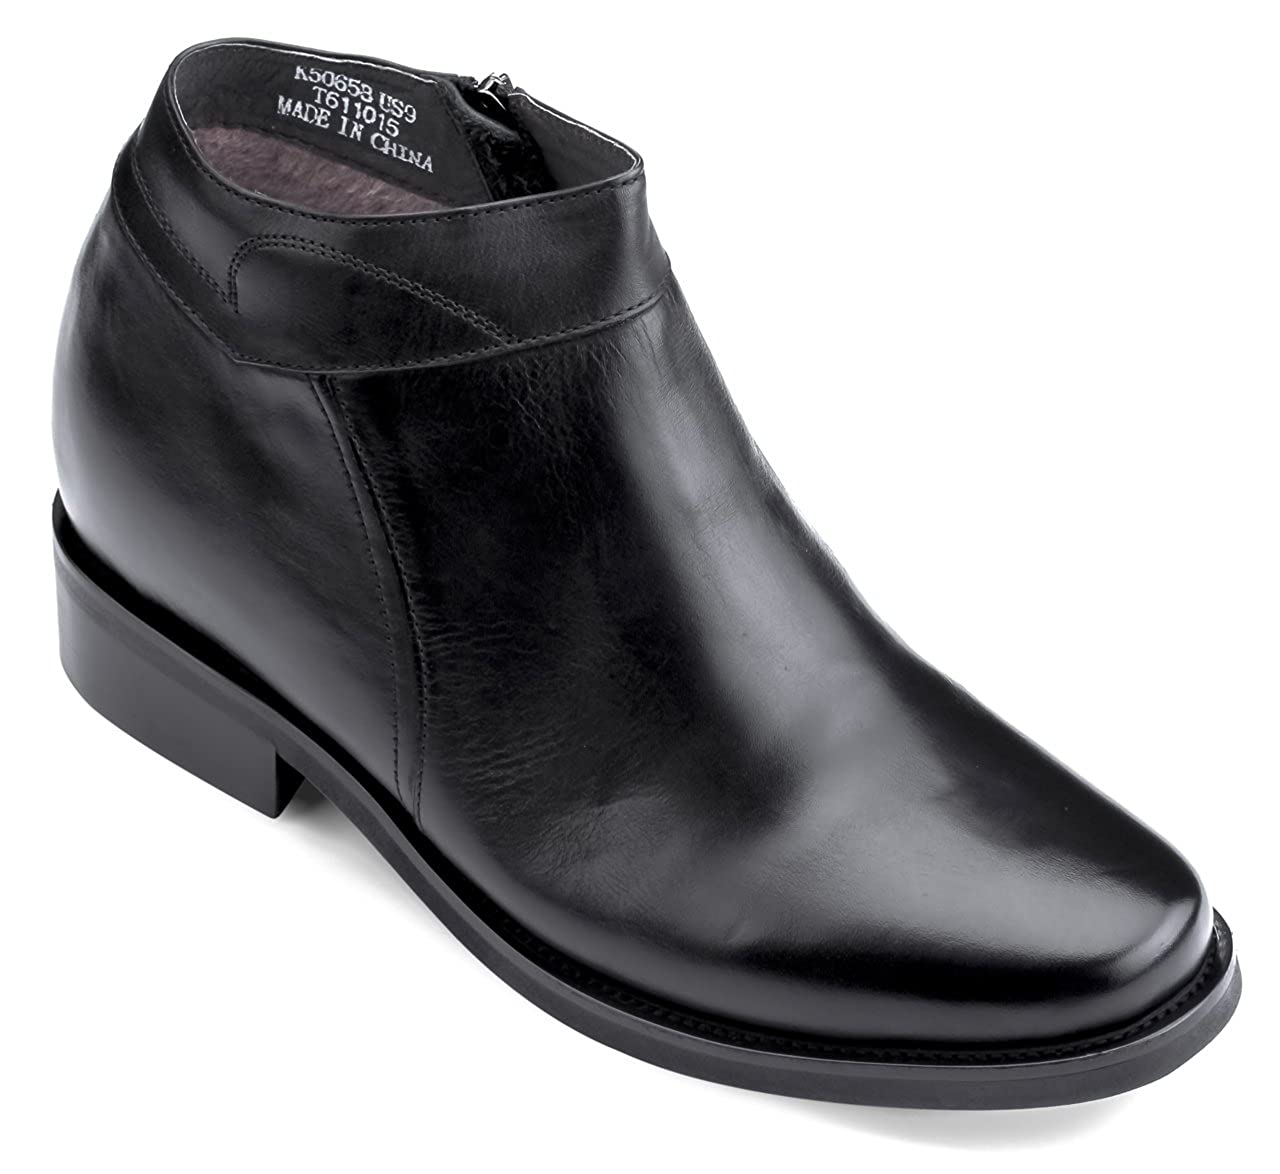 CALDEN - K50658 - 3.2 Inches Taller - Height Increasing Elevator Shoes (Black Dress Boots)